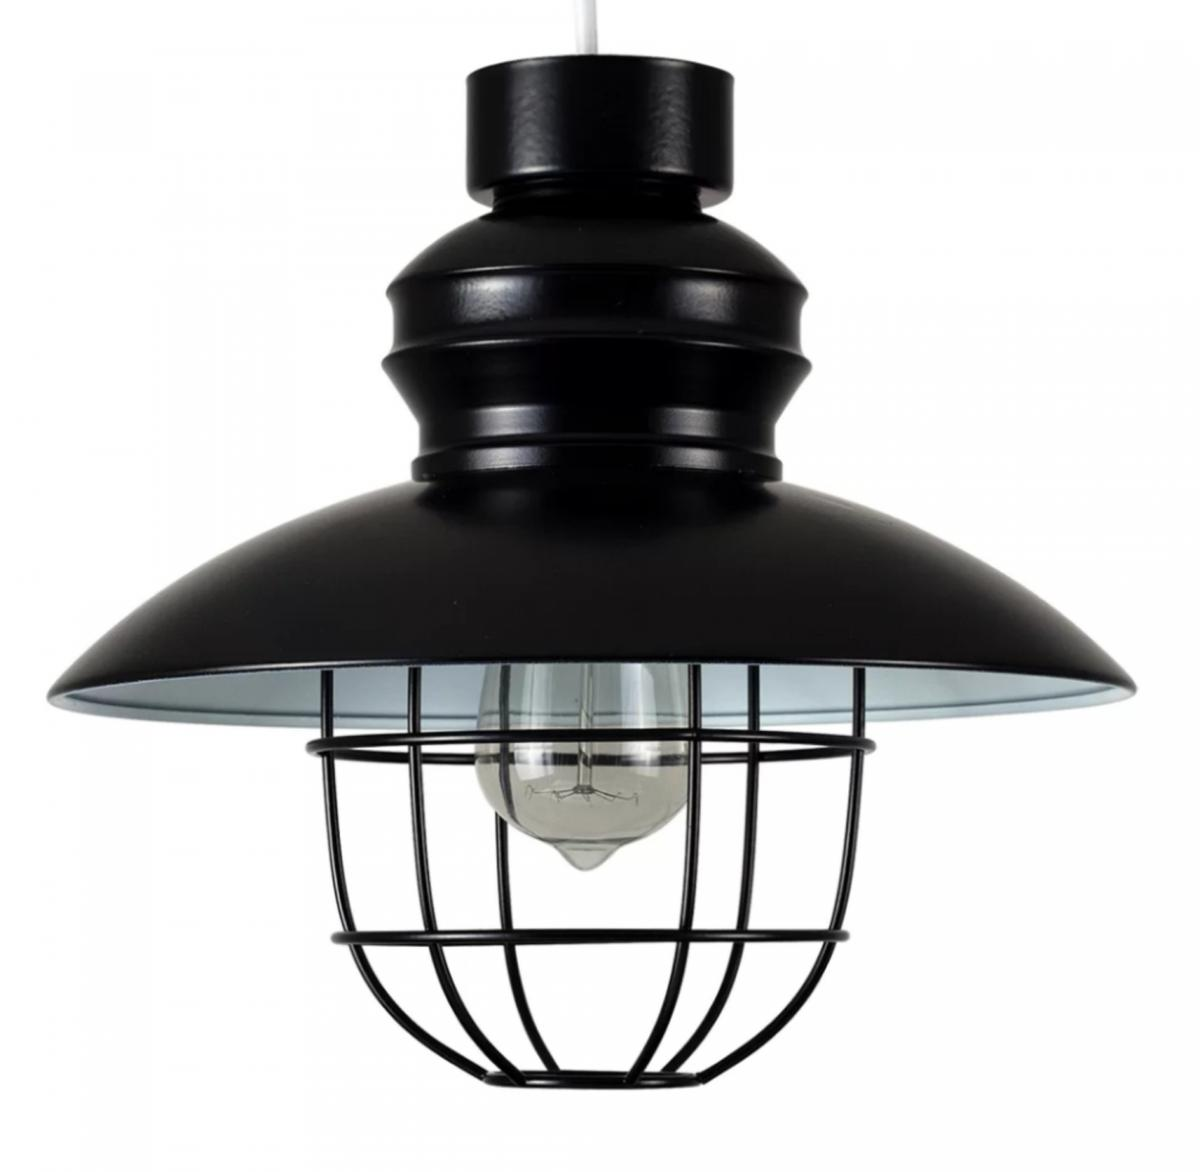 Ceiling Light Shades Set Of Two Black Metal Pendant Light Shades